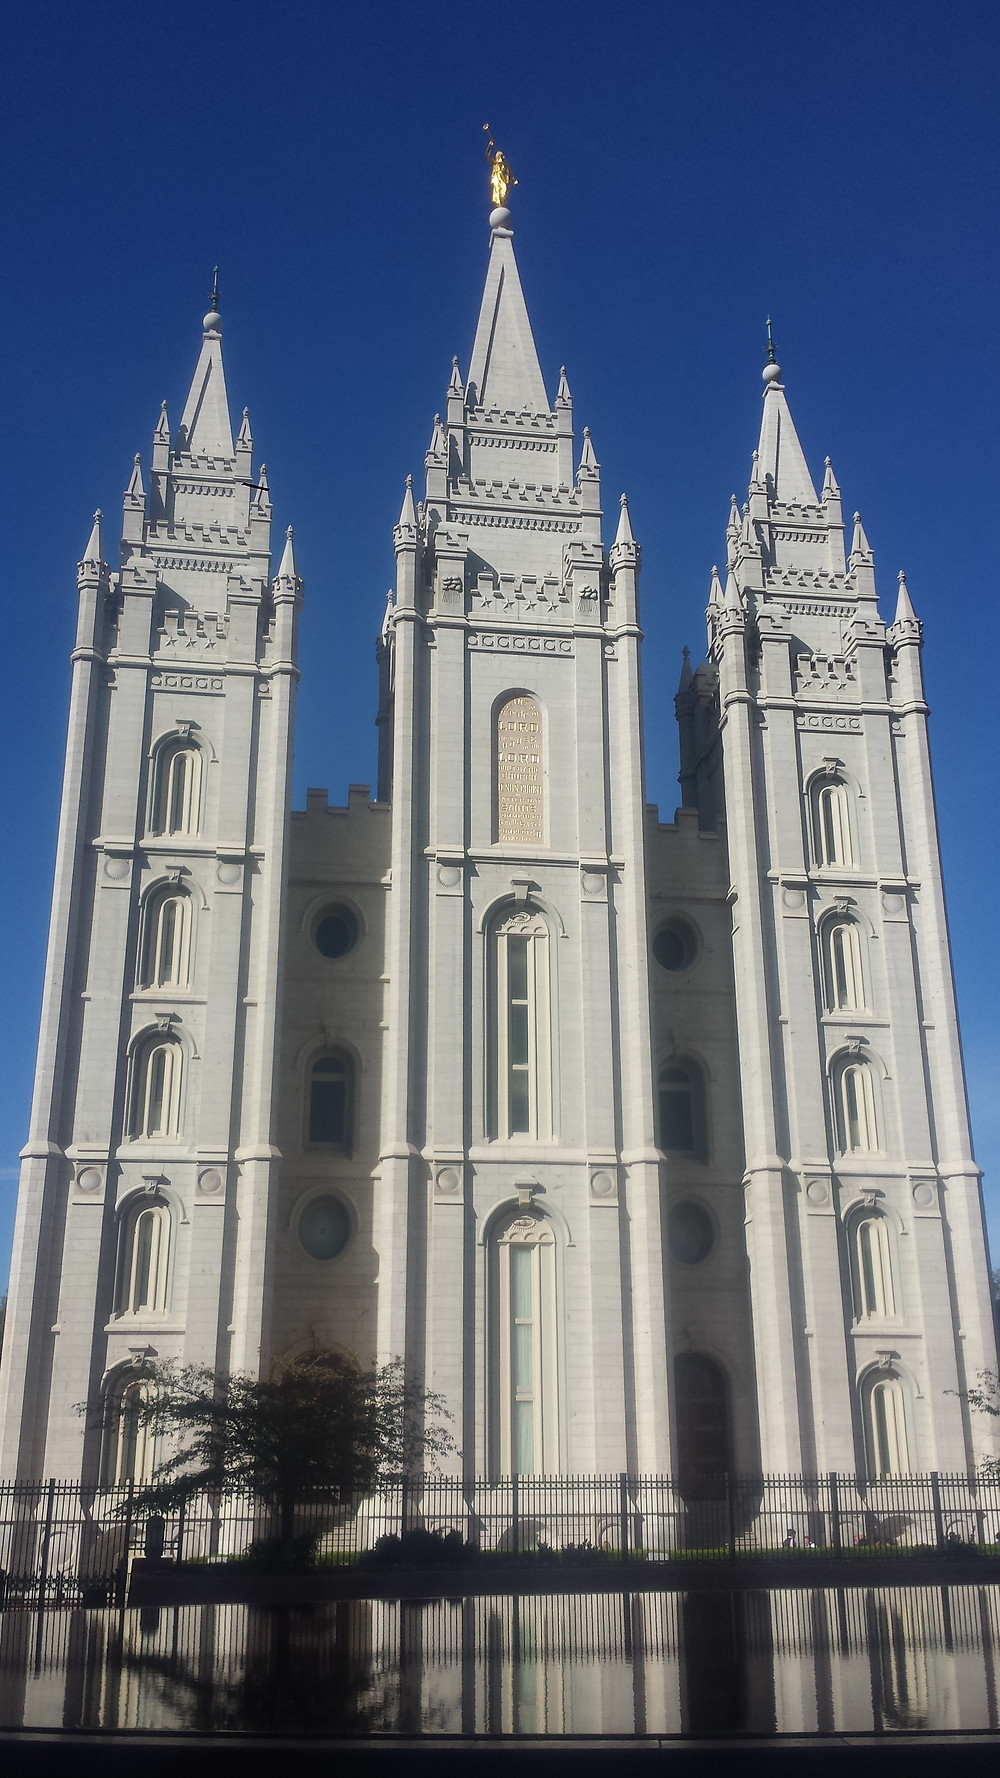 The Mormons' main temple in Salt Lake City. A kind of Mormon Mecca.